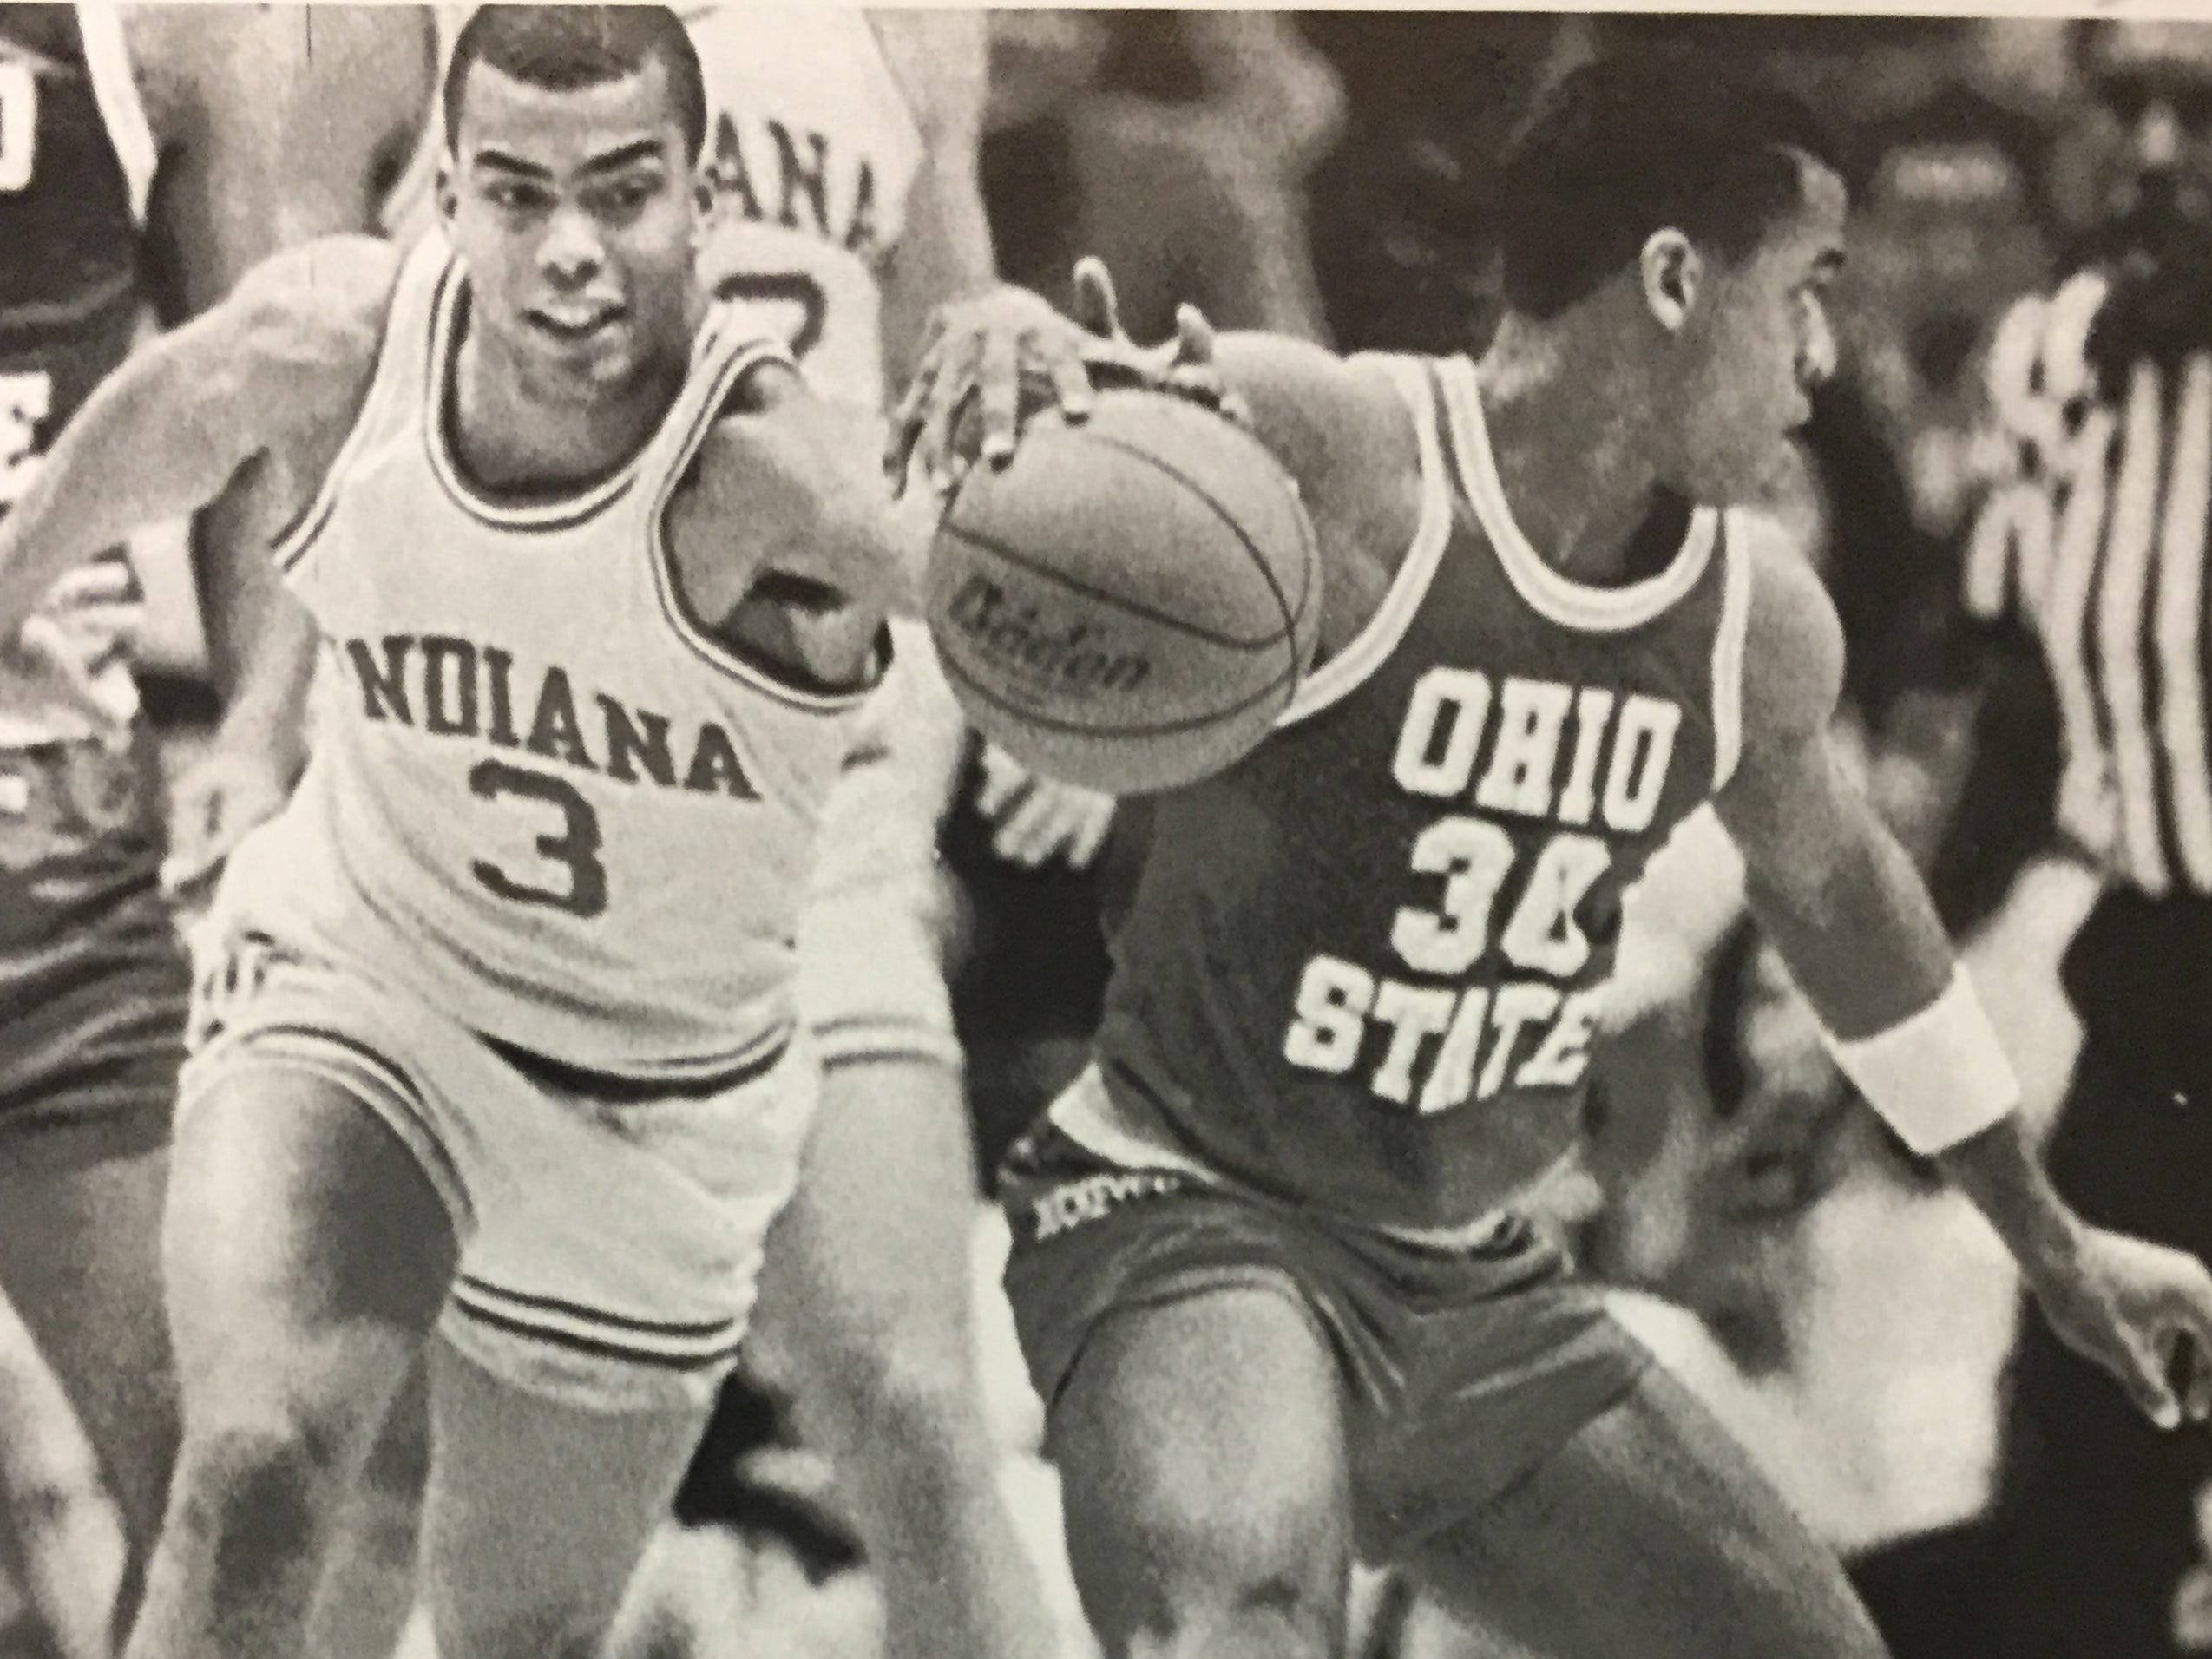 Jay Edwards moves in to steal the ball from Ohio State's Jamaal Brown on Jan. 4, 1989.